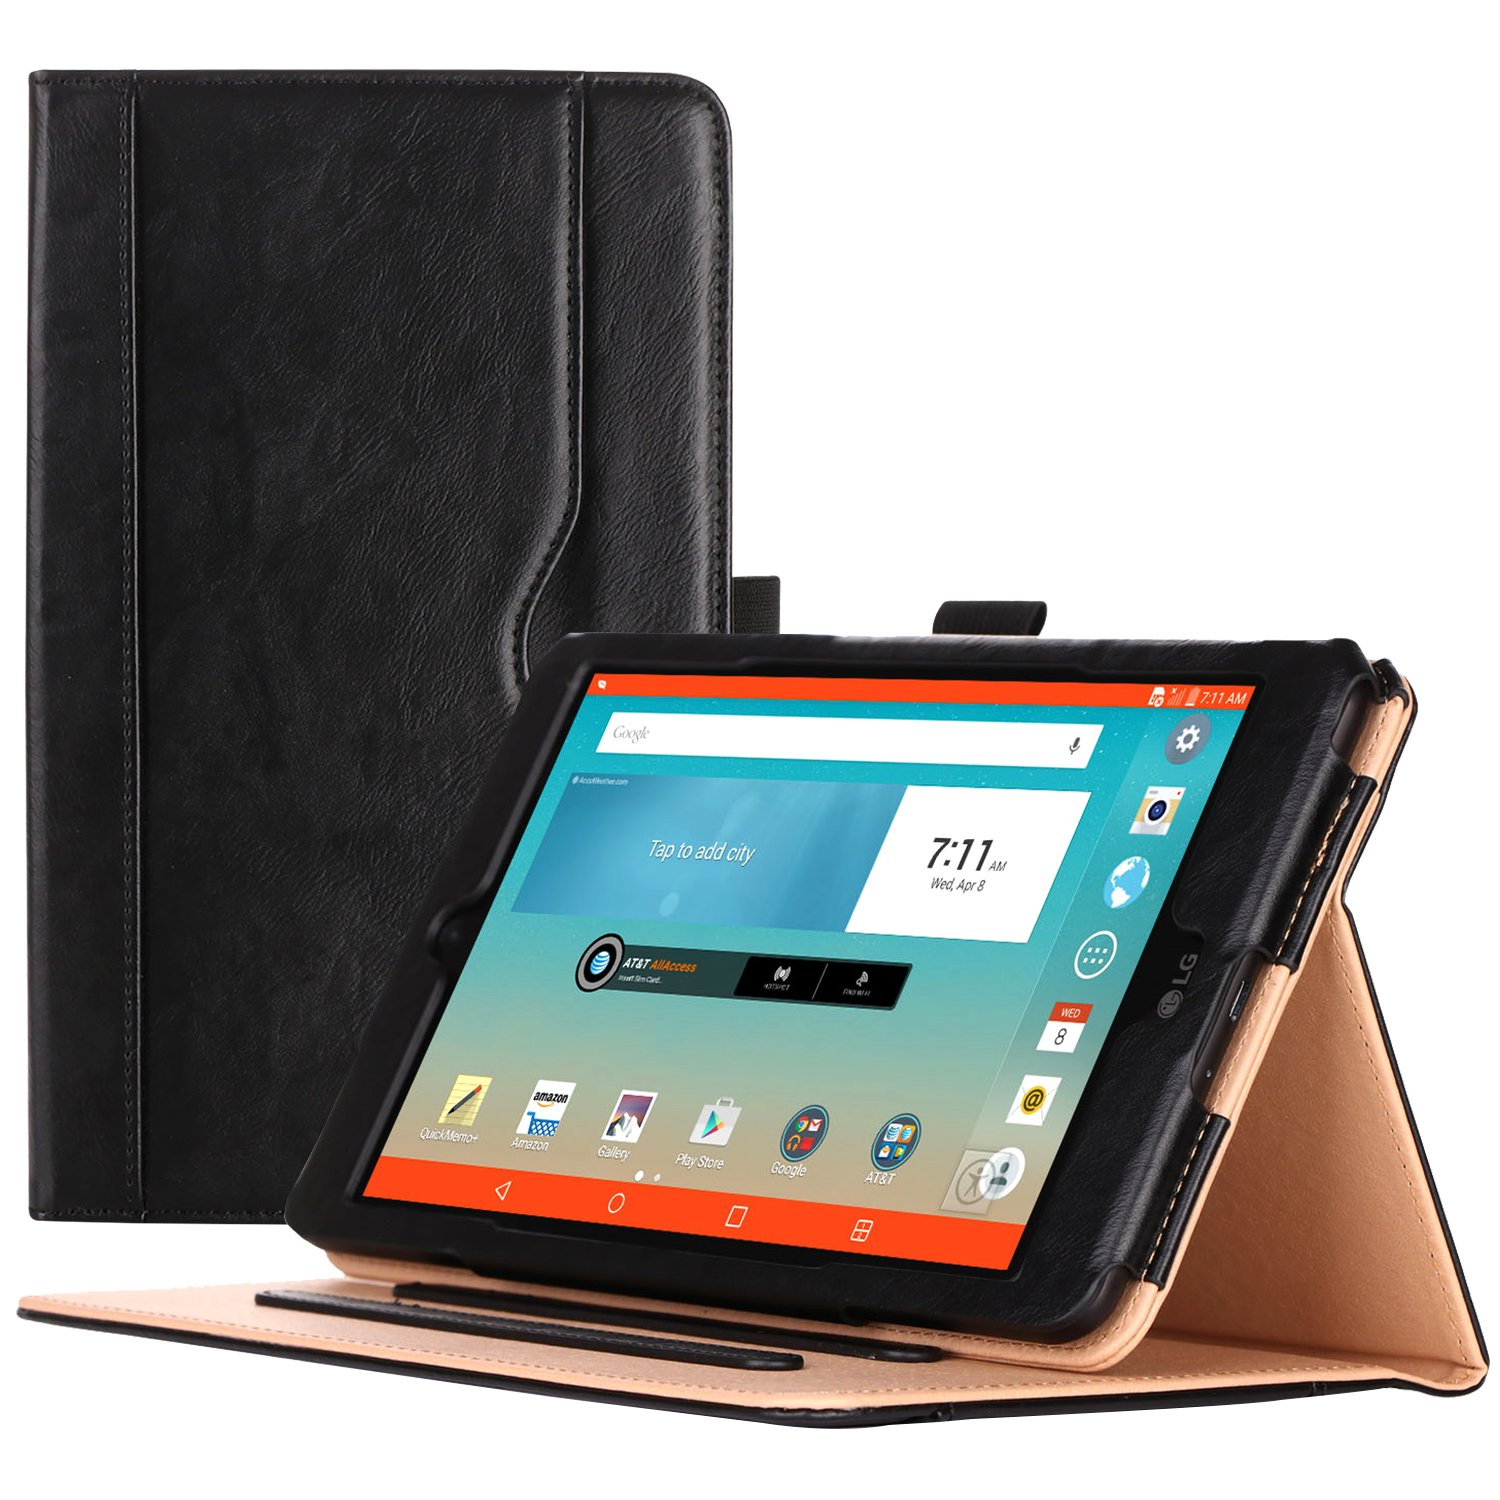 """ProCase Sprint LG G Pad F2 8.0 Case/T-Mobile LG G Pad X2 8.0 Plus Case - Standing Cover Folio Case for LG GPad F2 Sprint Model LK460 / LG G Pad X2 8.0 Plus V530 8"""" Tablet 2017 -Black"""